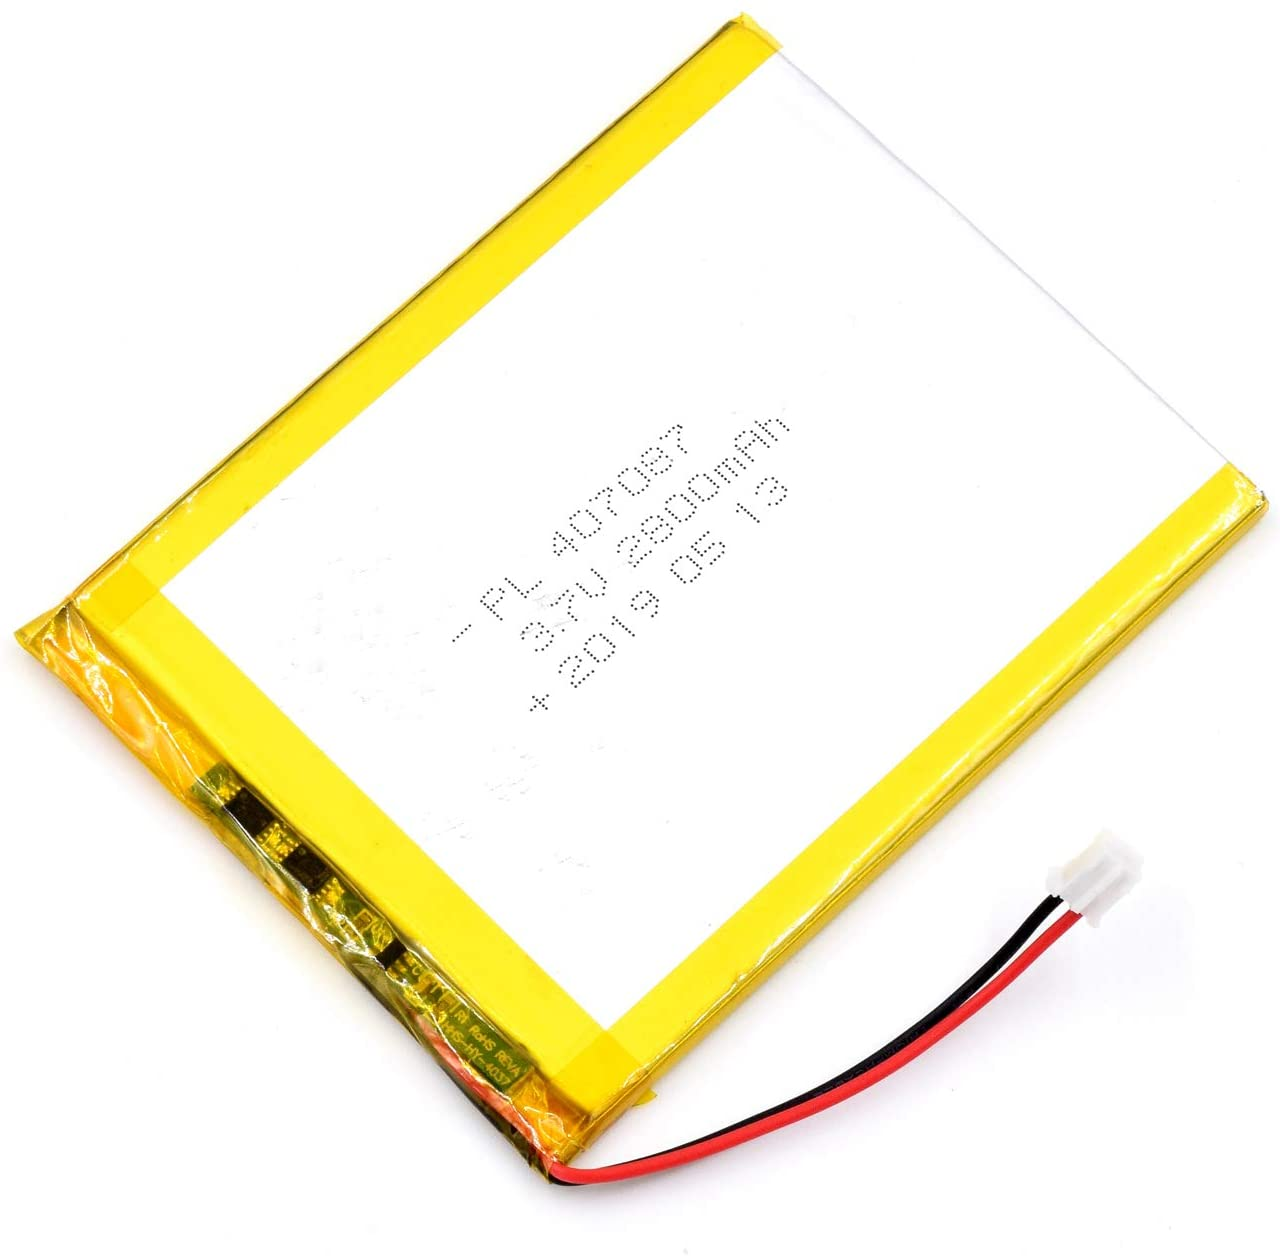 AKZYTUE 3.7V 2800mAh 407087 Lipo Battery Rechargeable Lithium Polymer ion Battery Pack with JST Connector